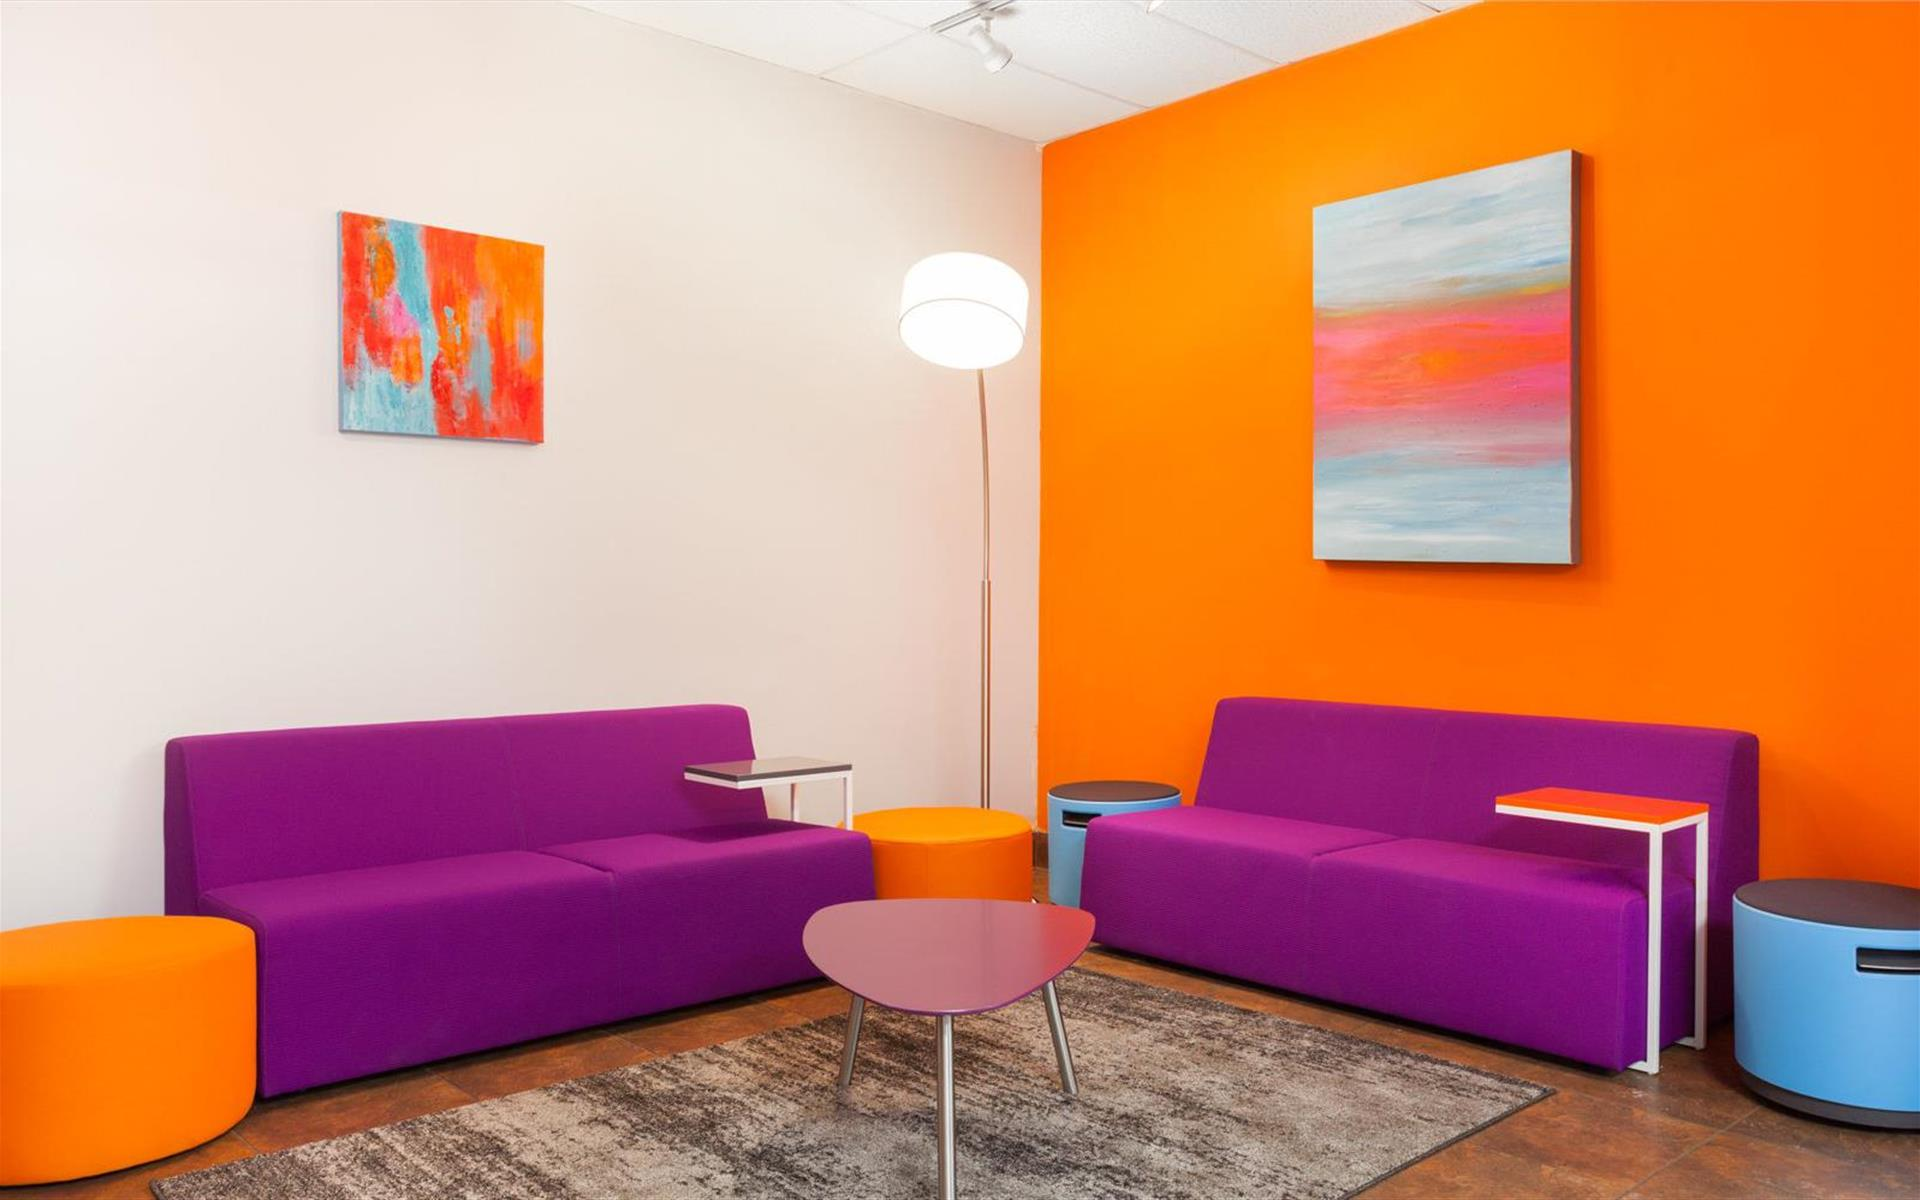 Bru Chicago - Office for the team of up to 14 people